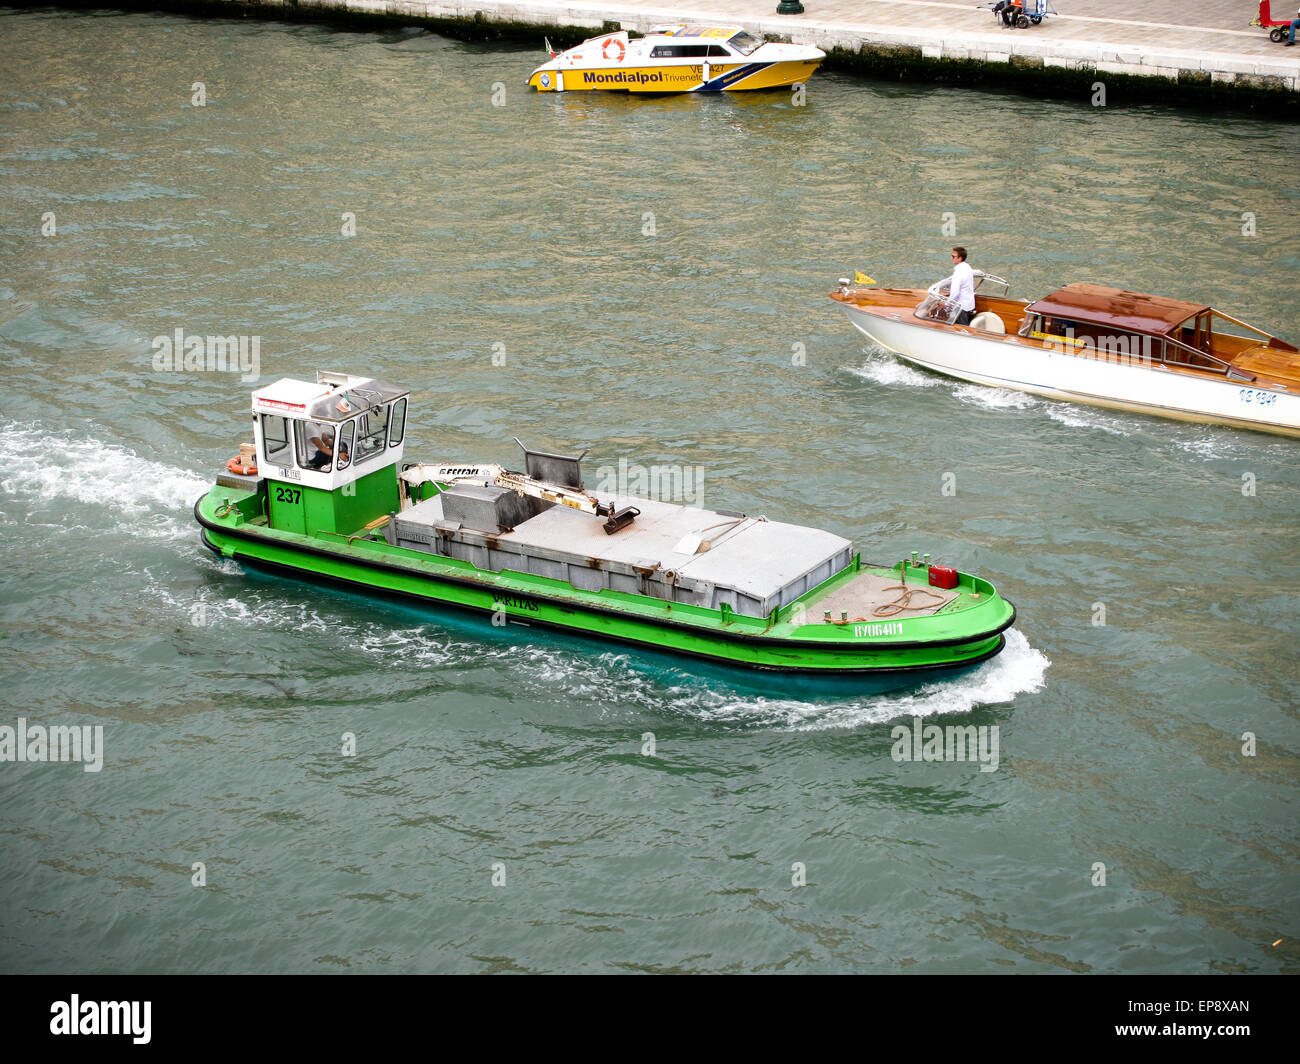 A green commercial boat on the Grand Canal in Venice - Stock Image